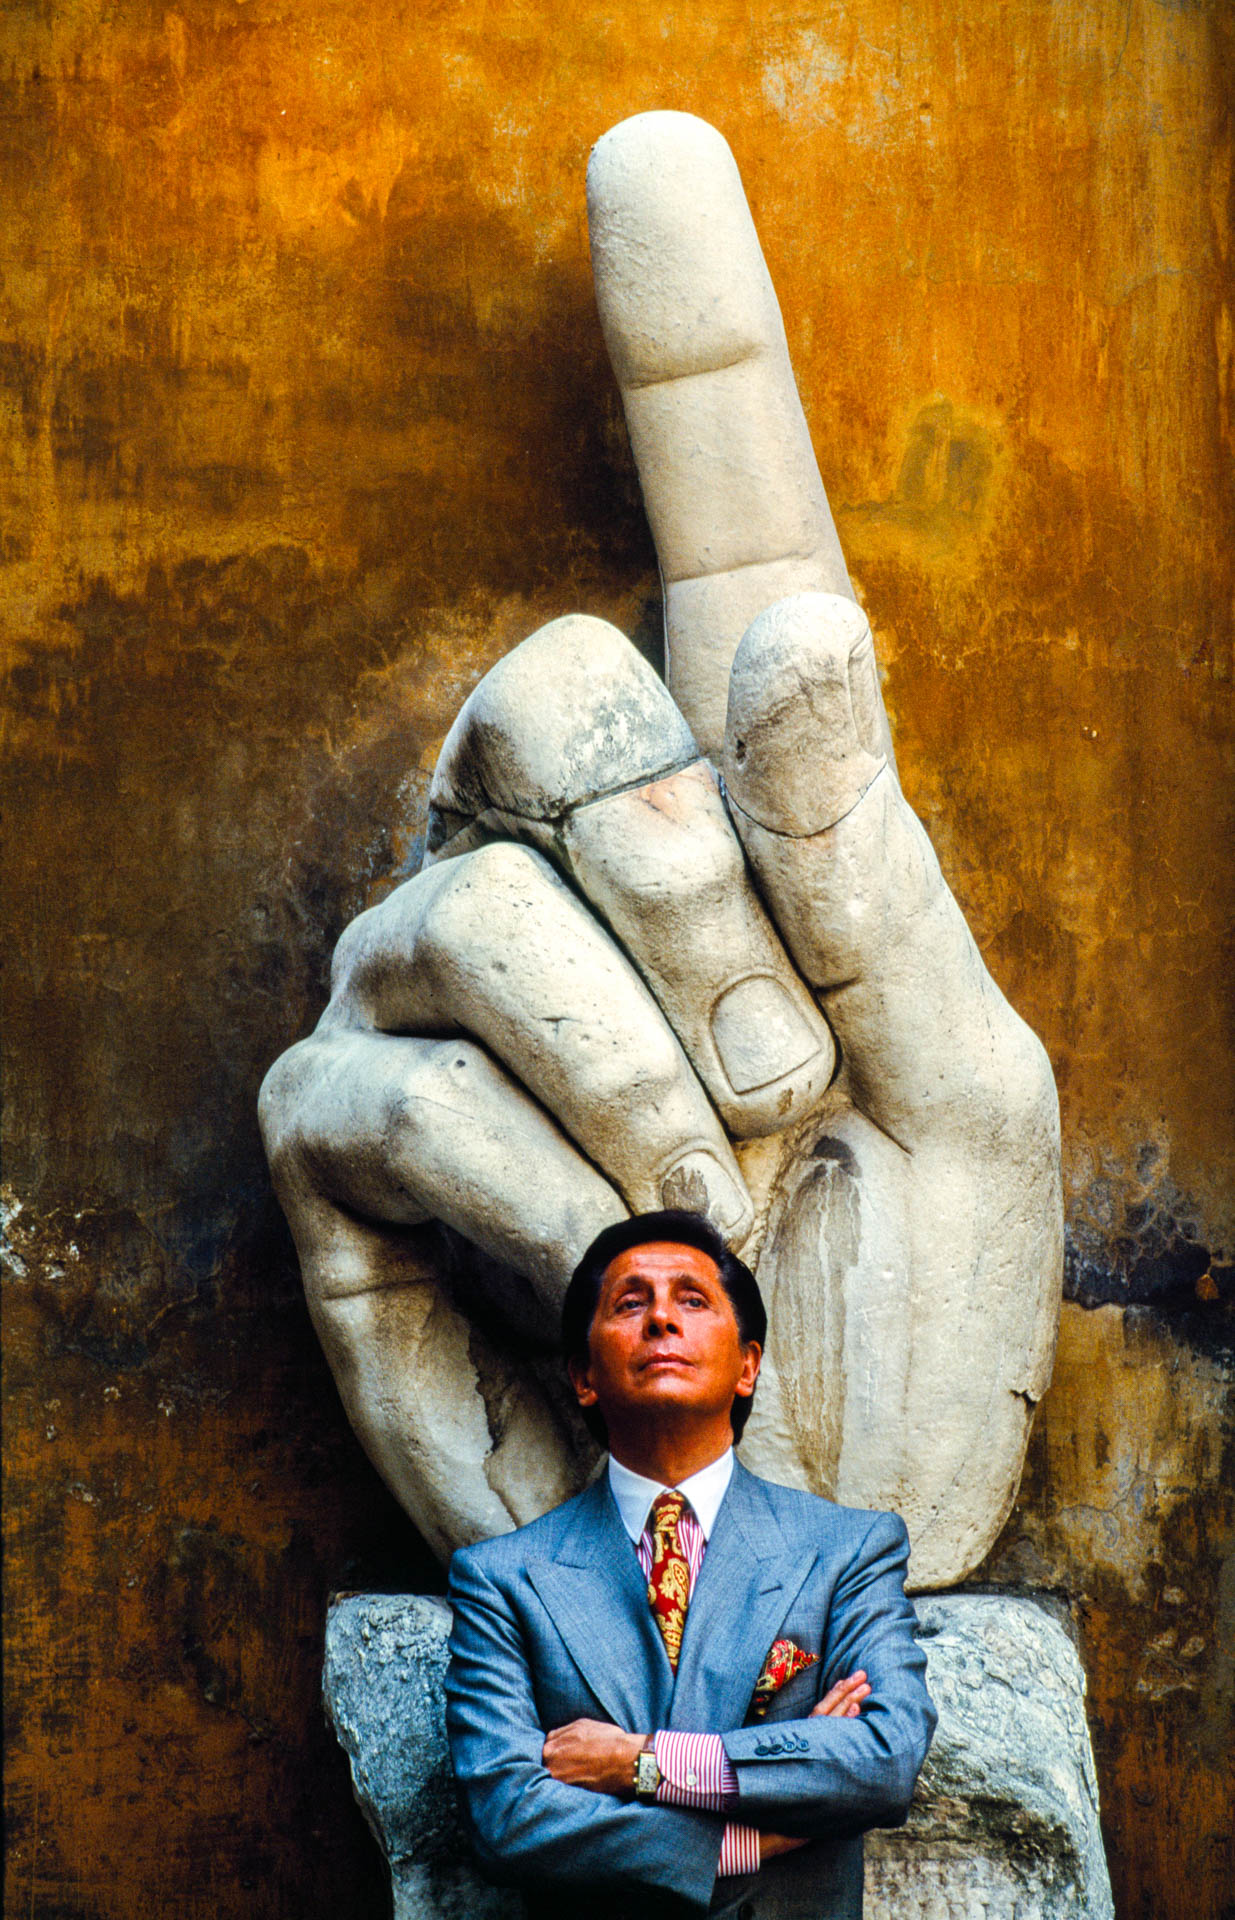 Rome, Italy - 28 May 1991